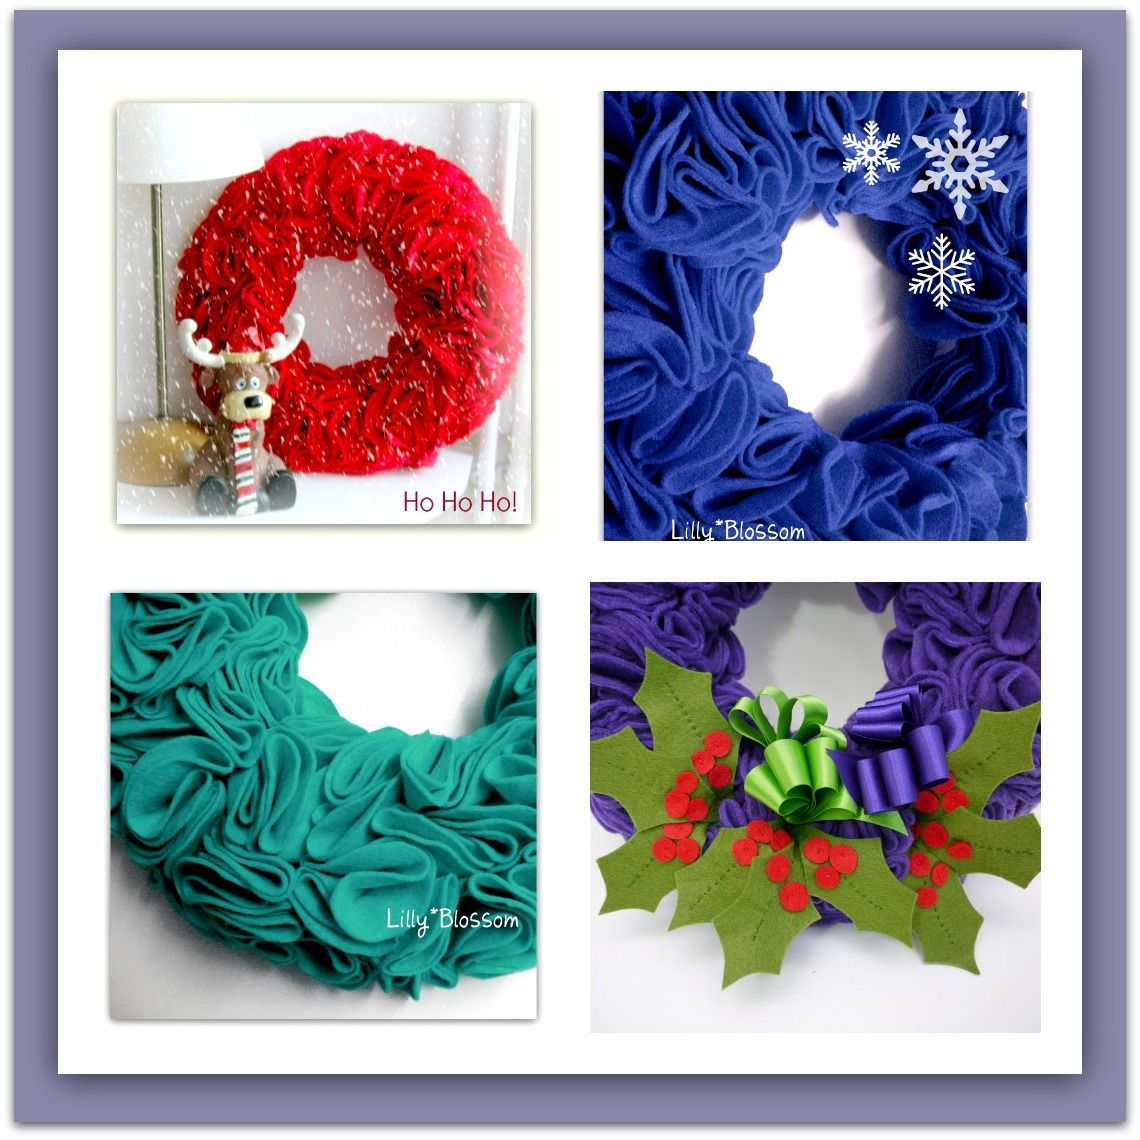 It's that time of the year again and you can make one of these gorgeous felt wreaths without any sewing !!! Just lots of cutting out and pinning. If you want to add the holly leaves the templates are included and you can simple stitch the veins and the berries on before attaching.. lots of close up photos will help you every step of the way :) https://www.etsy.com/uk/listing/108430833/pdf-christmas-felt-ruffle-wreath-with?ref=shop_home_active